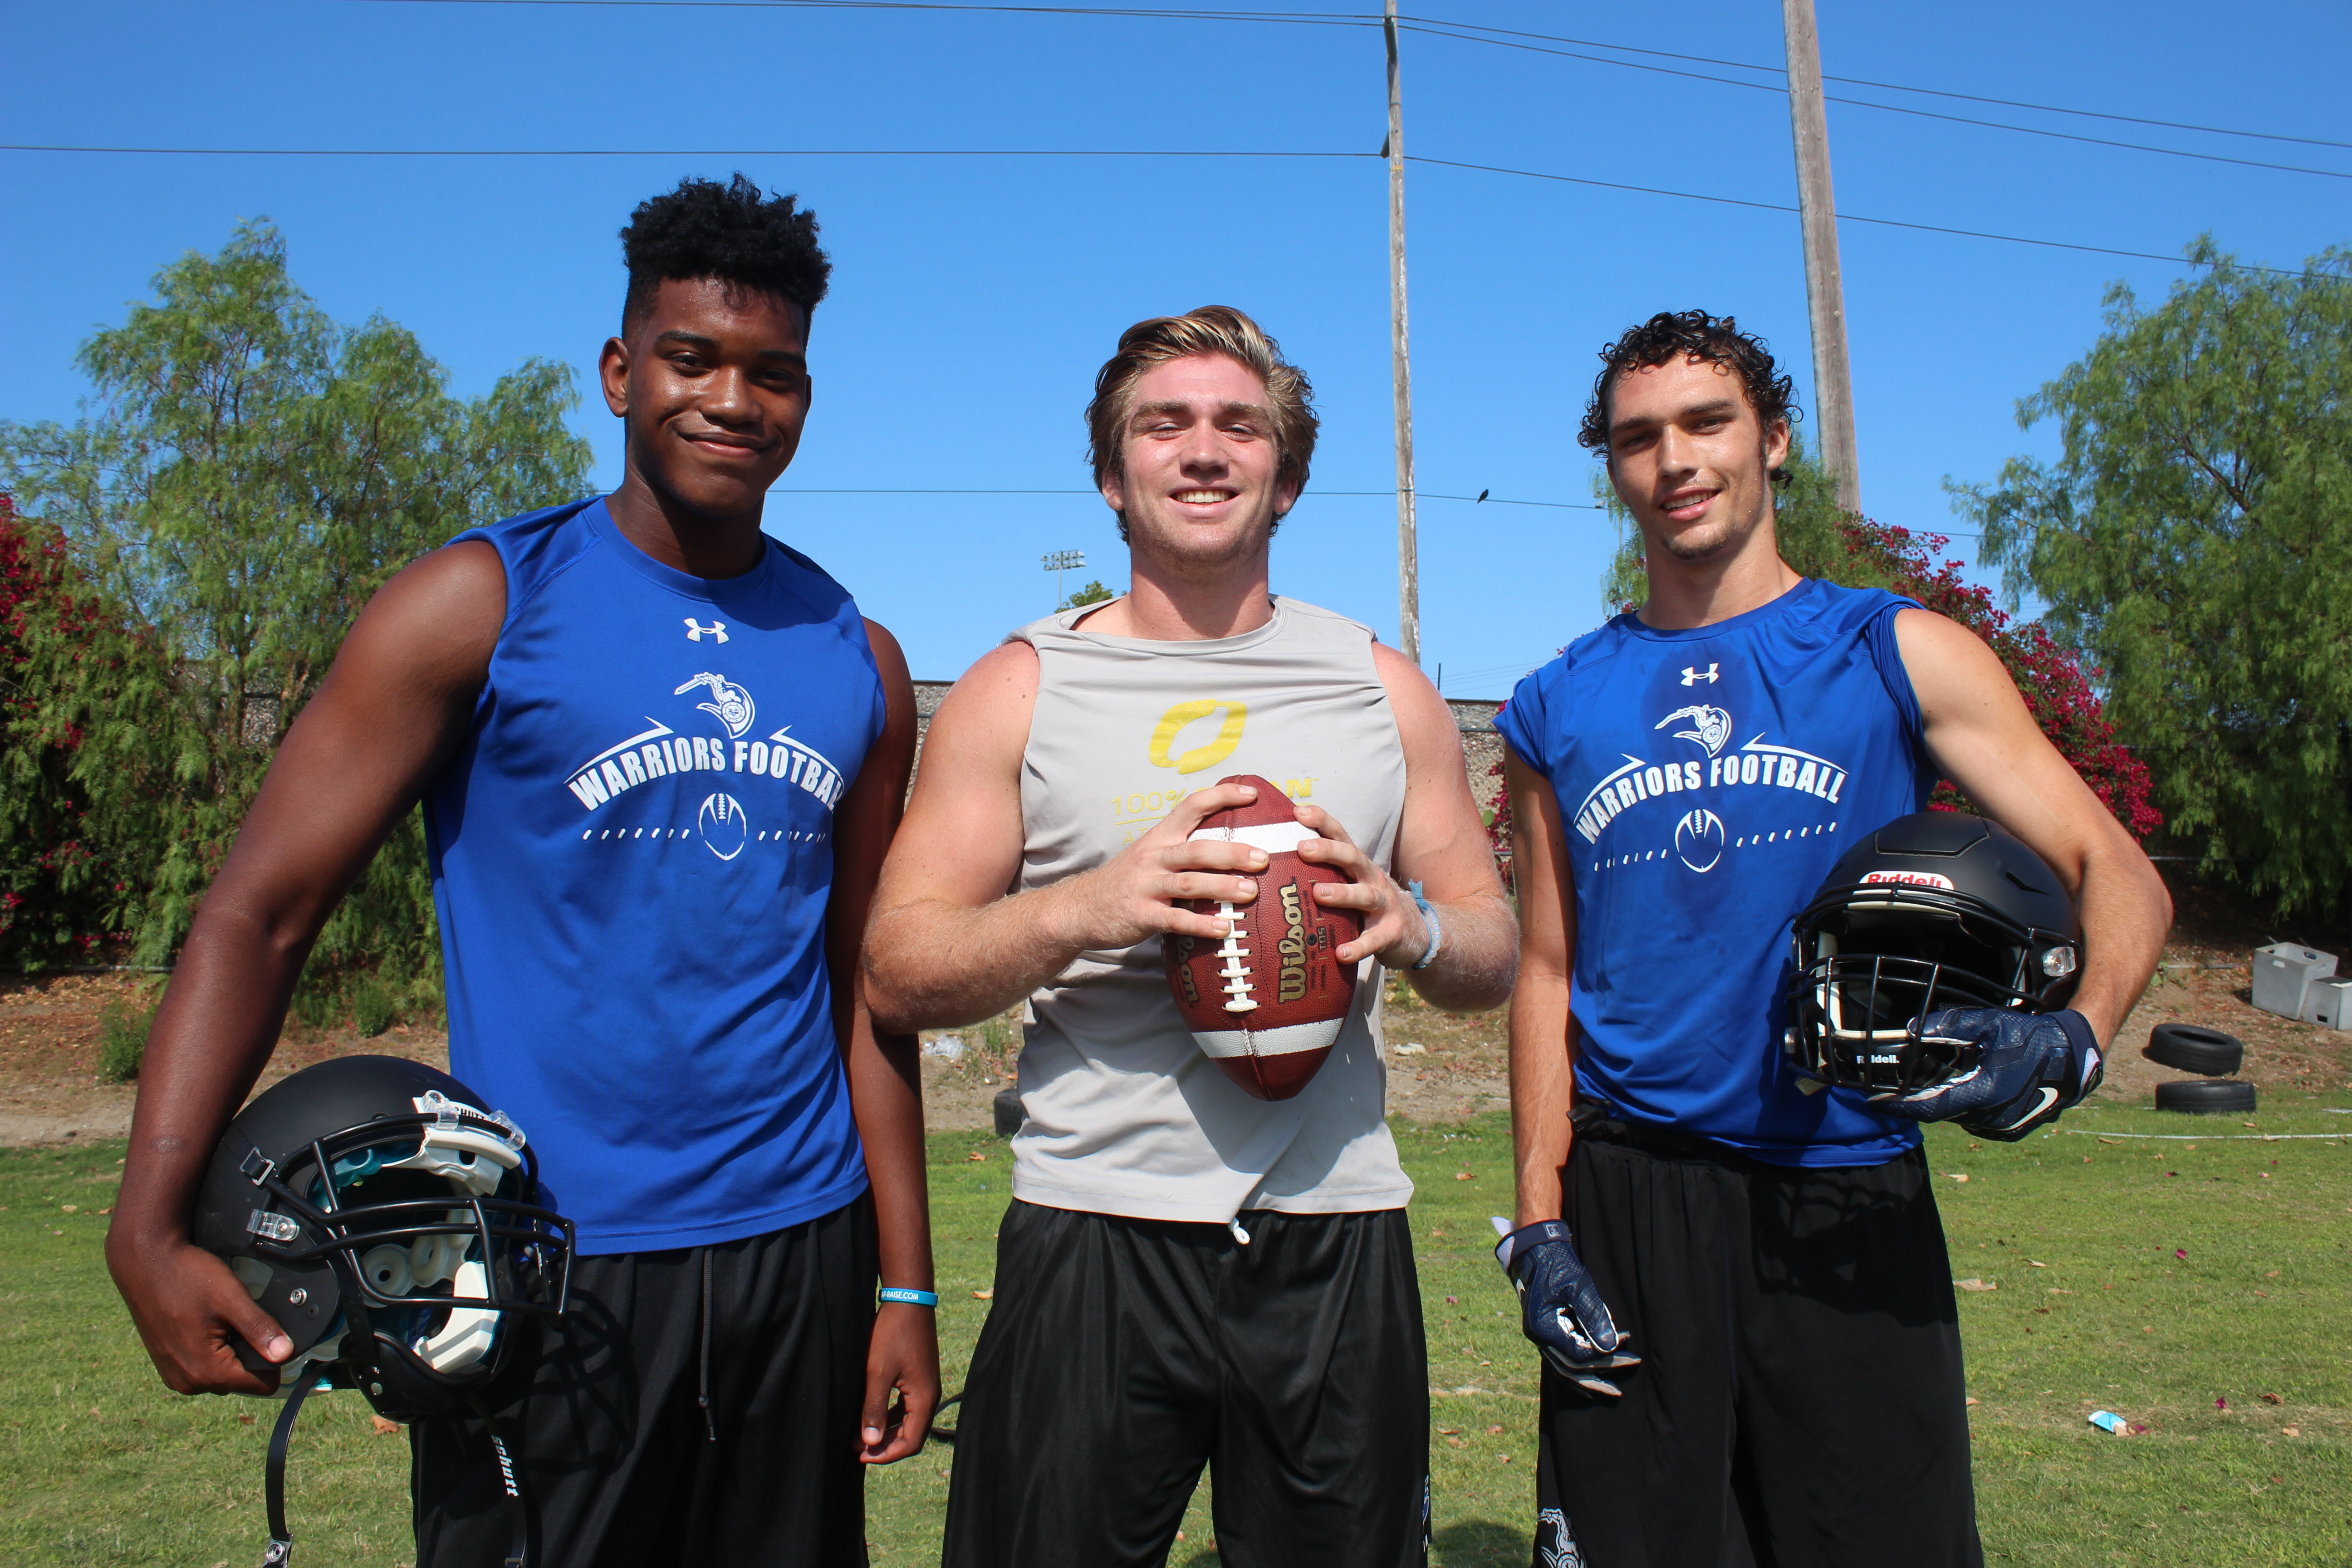 L to R: Saddleback Valley Christian seniors Jon Robinson, Cade Henjum and Cole Etchells look to lead a young Warriors team in 2016. Photo: Steve Breazeale